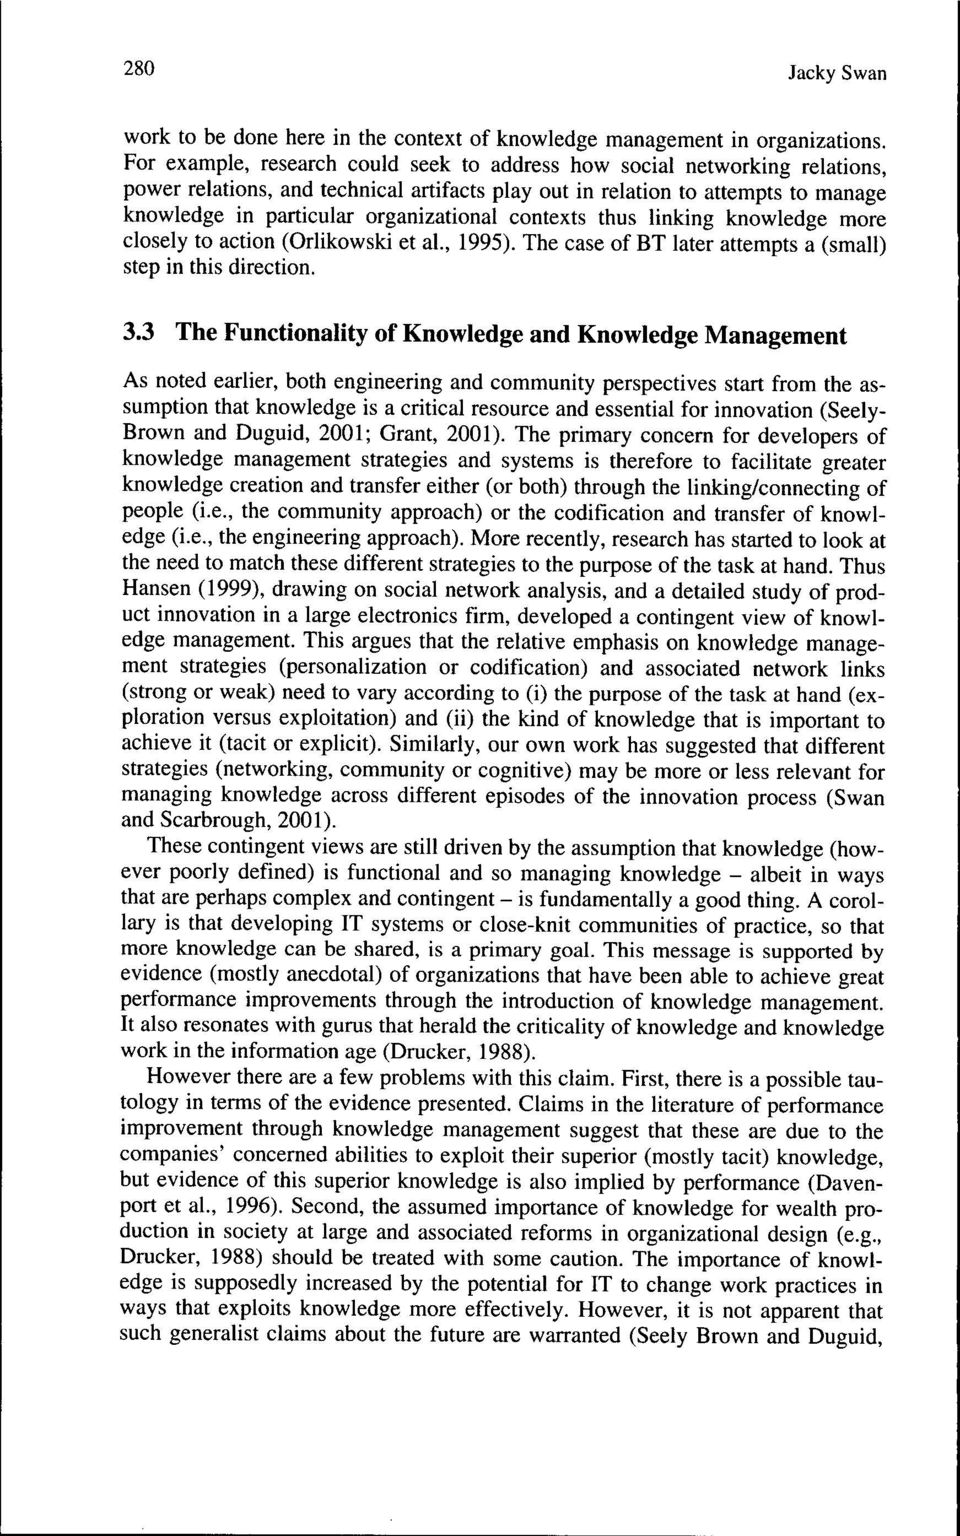 contexts thus linking knowledge more closely to action (Orlikowski et al., 1995). The case of BT later attempts a (small) step in this direction. 3.